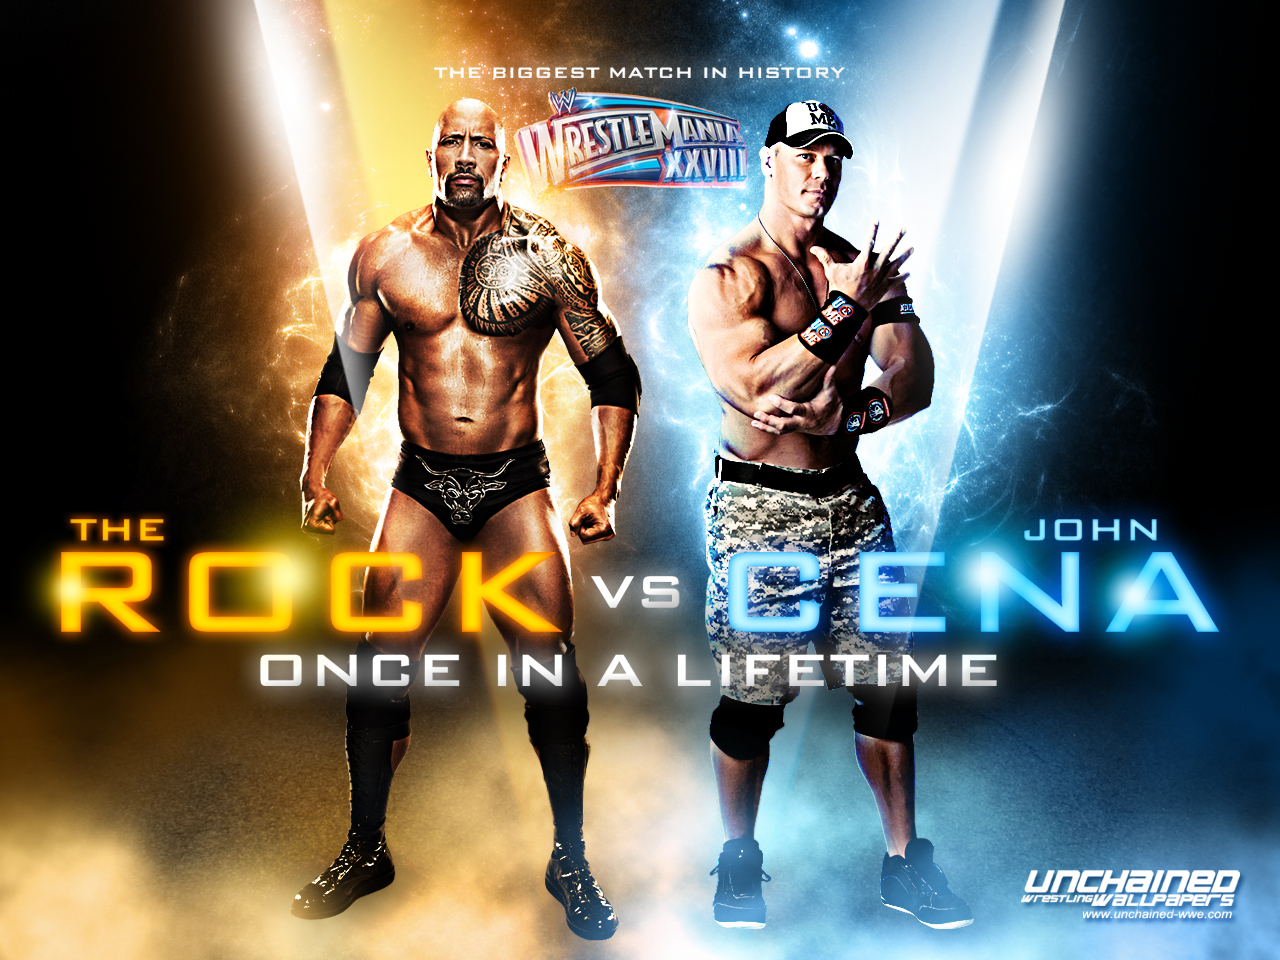 Wwe Images Wrestlemania 28 The Rock Vs John Cena Hd Wallpaper And